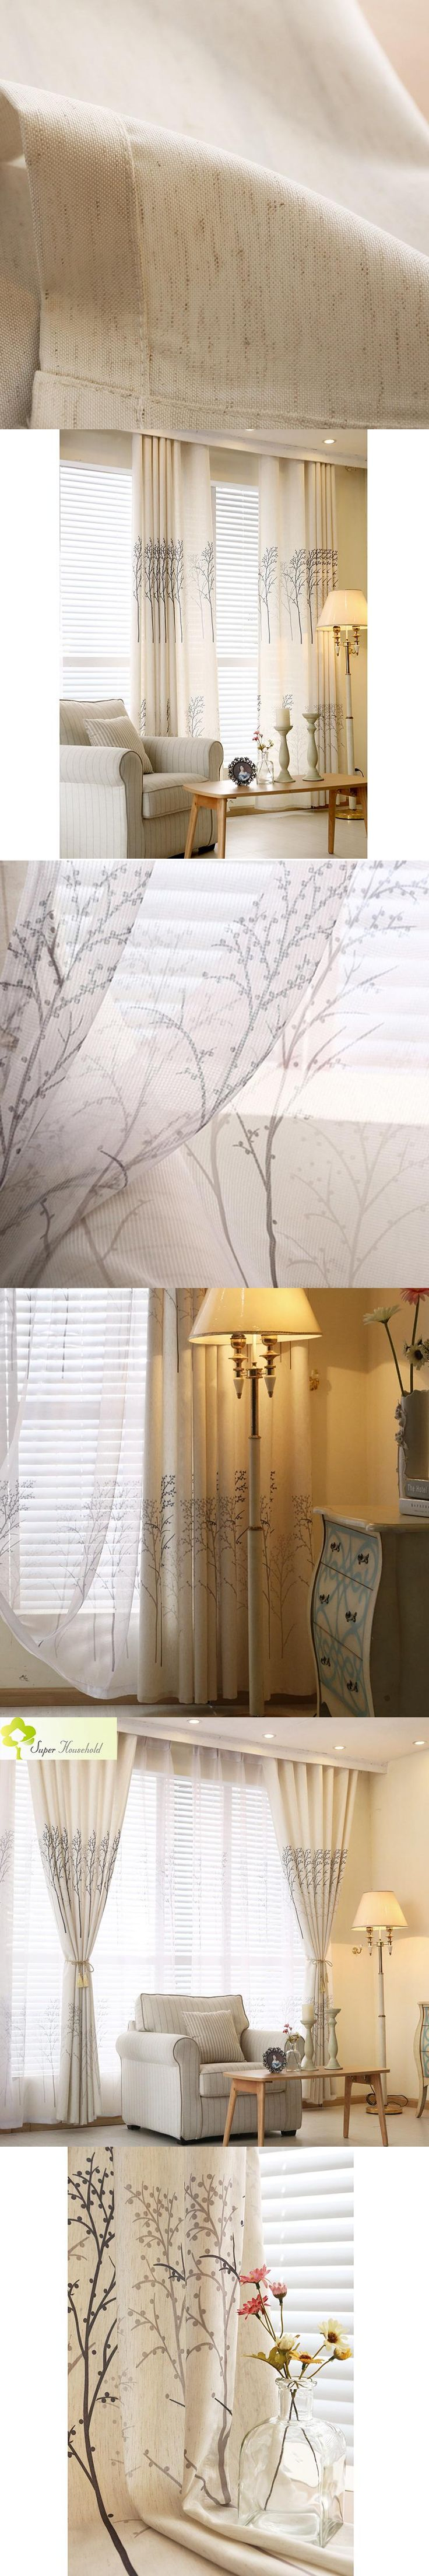 Pastoral Tree Printed Children Room Curtains for Bedroom Living Room Roman Blinds Kitchen Door Curtains Window Decorative Drapes